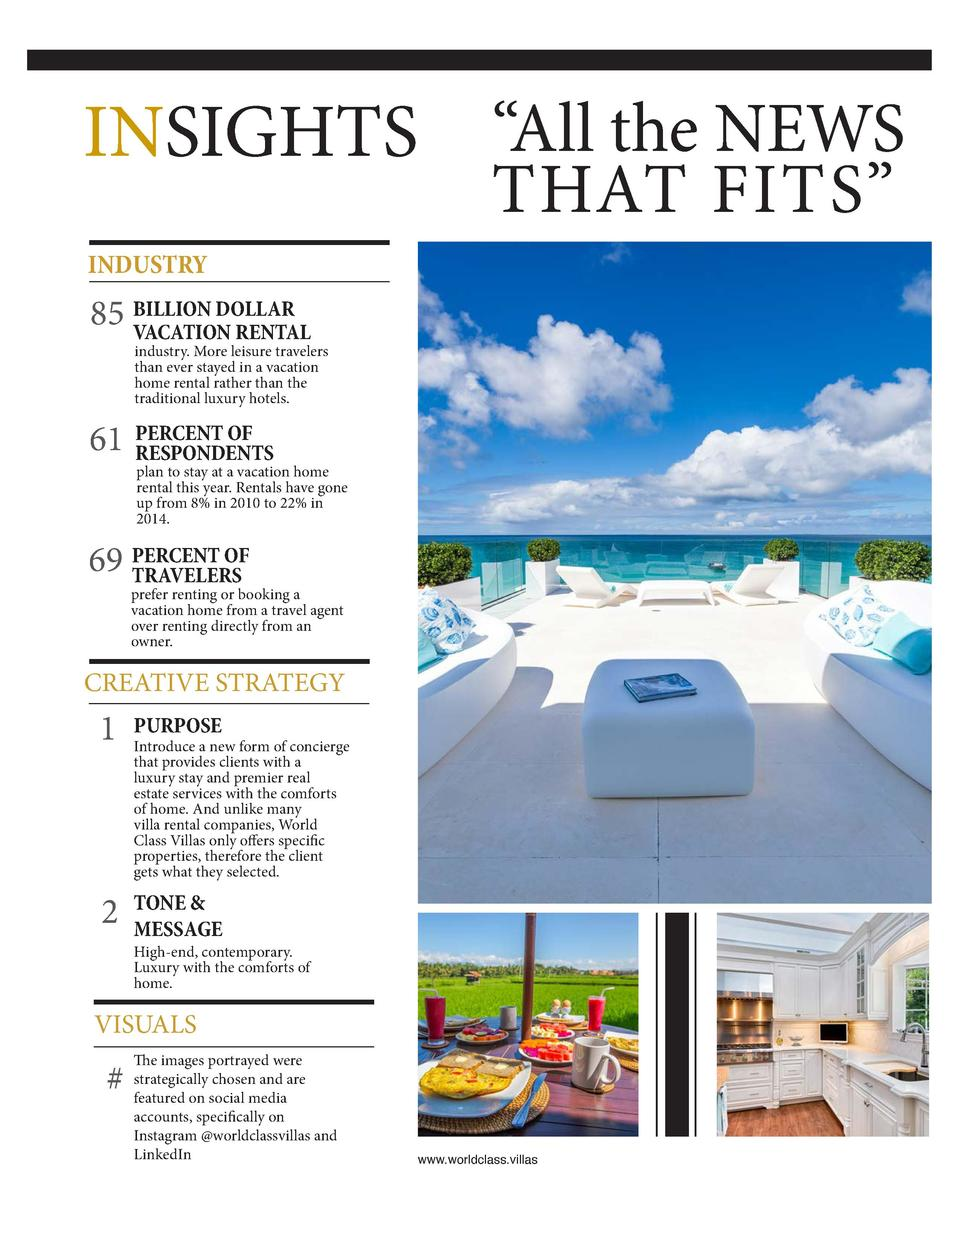 INSIGHTS    All the NEWS THAT FITS     INDUSTRY DOLLAR 85 BILLION VACATION RENTAL  industry. More leisure travelers than e...